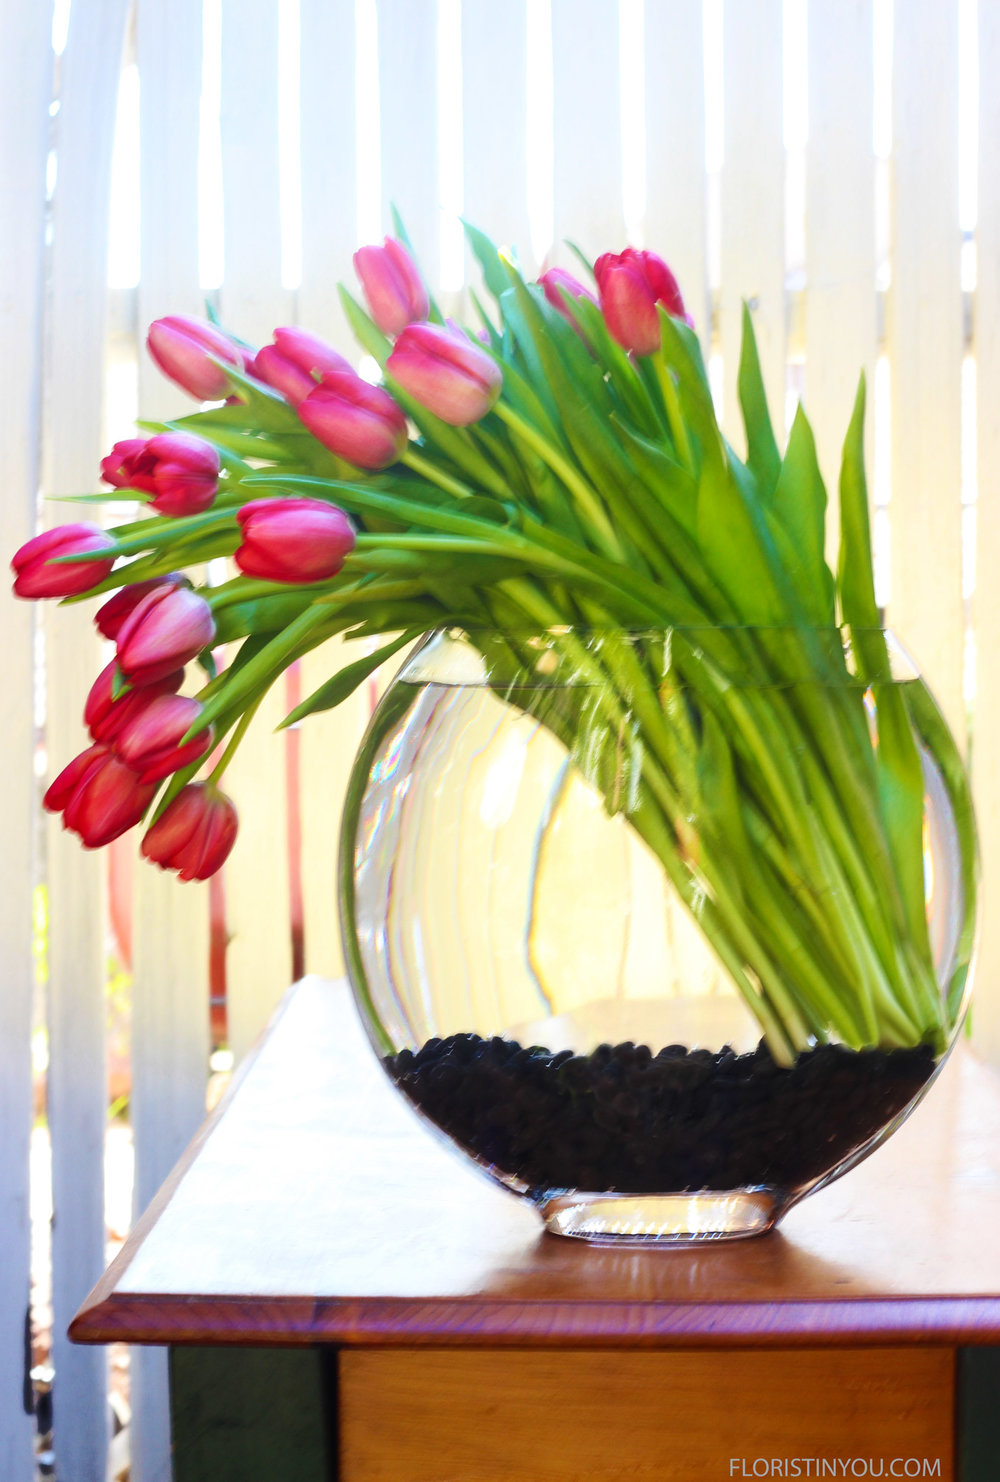 Insert flowers. Keep stems together at bottom right. Lay flowers to rest on left side of vase.